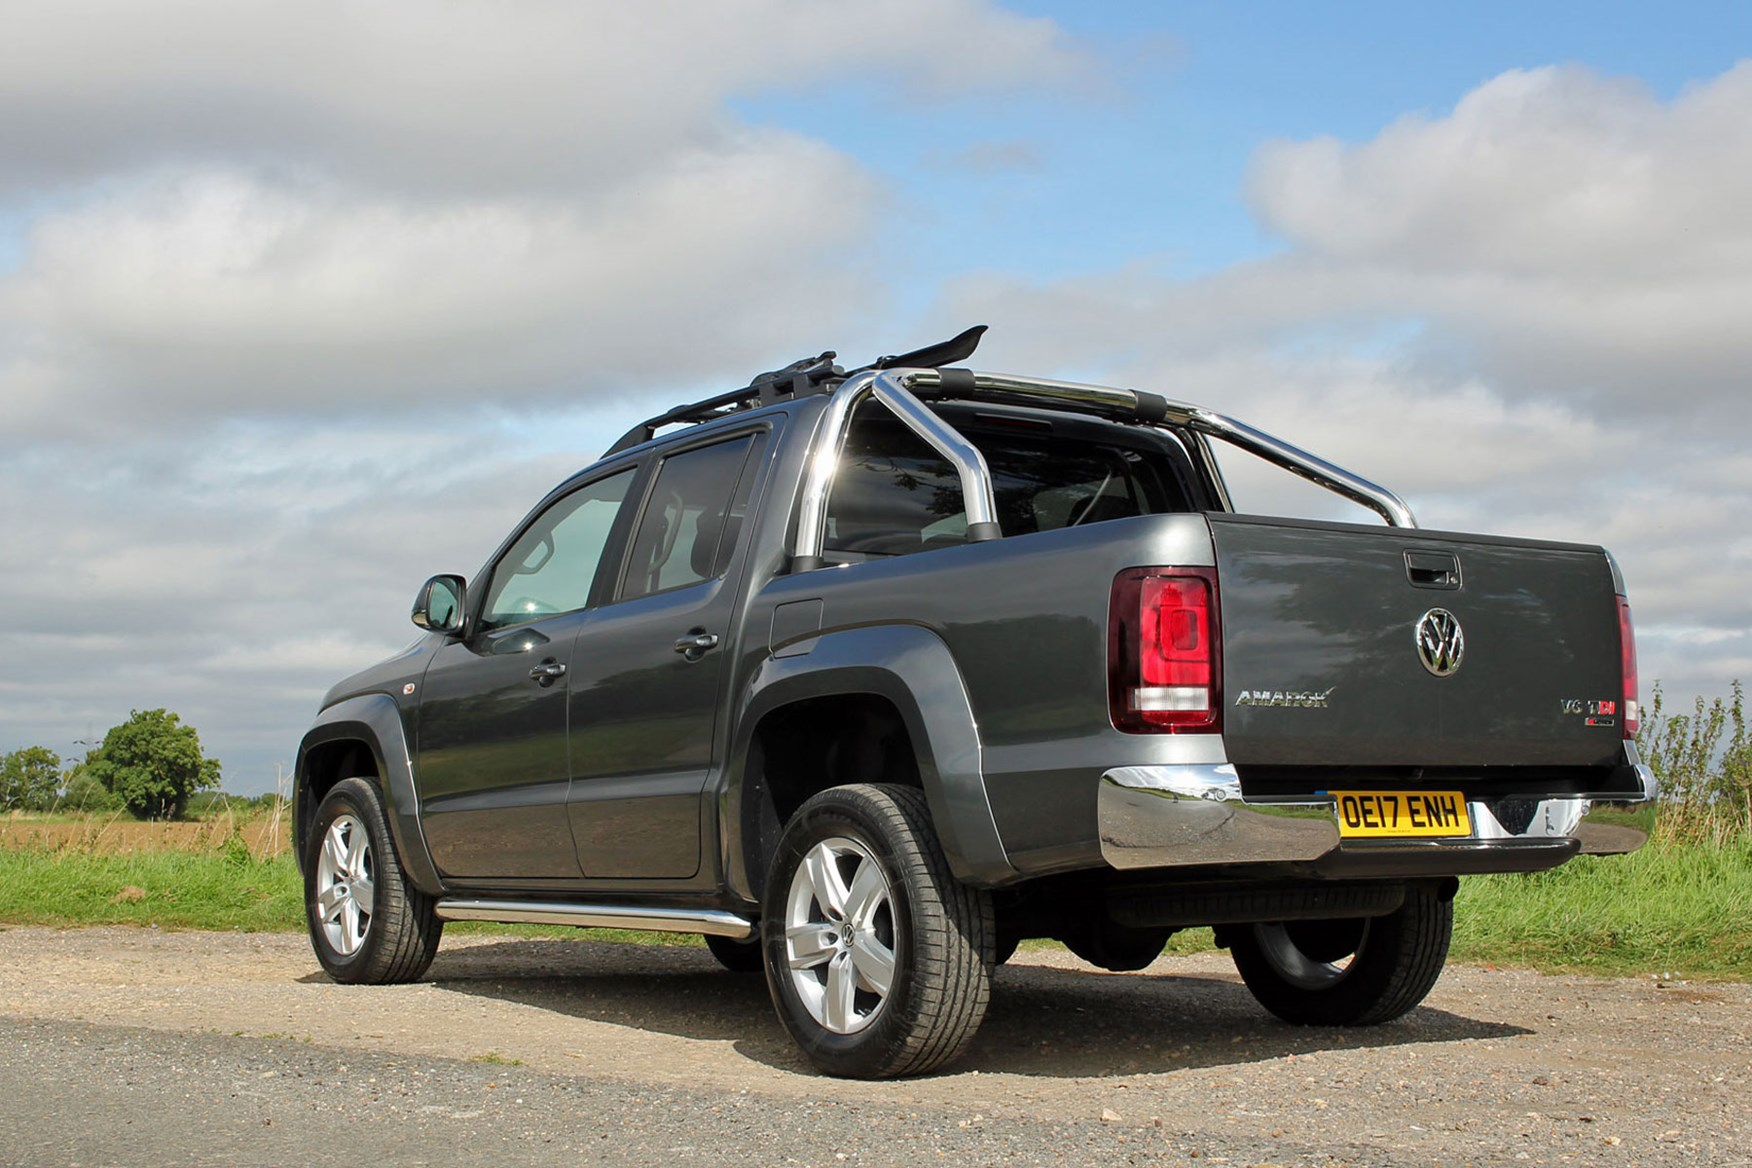 VW Amarok V6 Highline 224hp review - rear view, grey